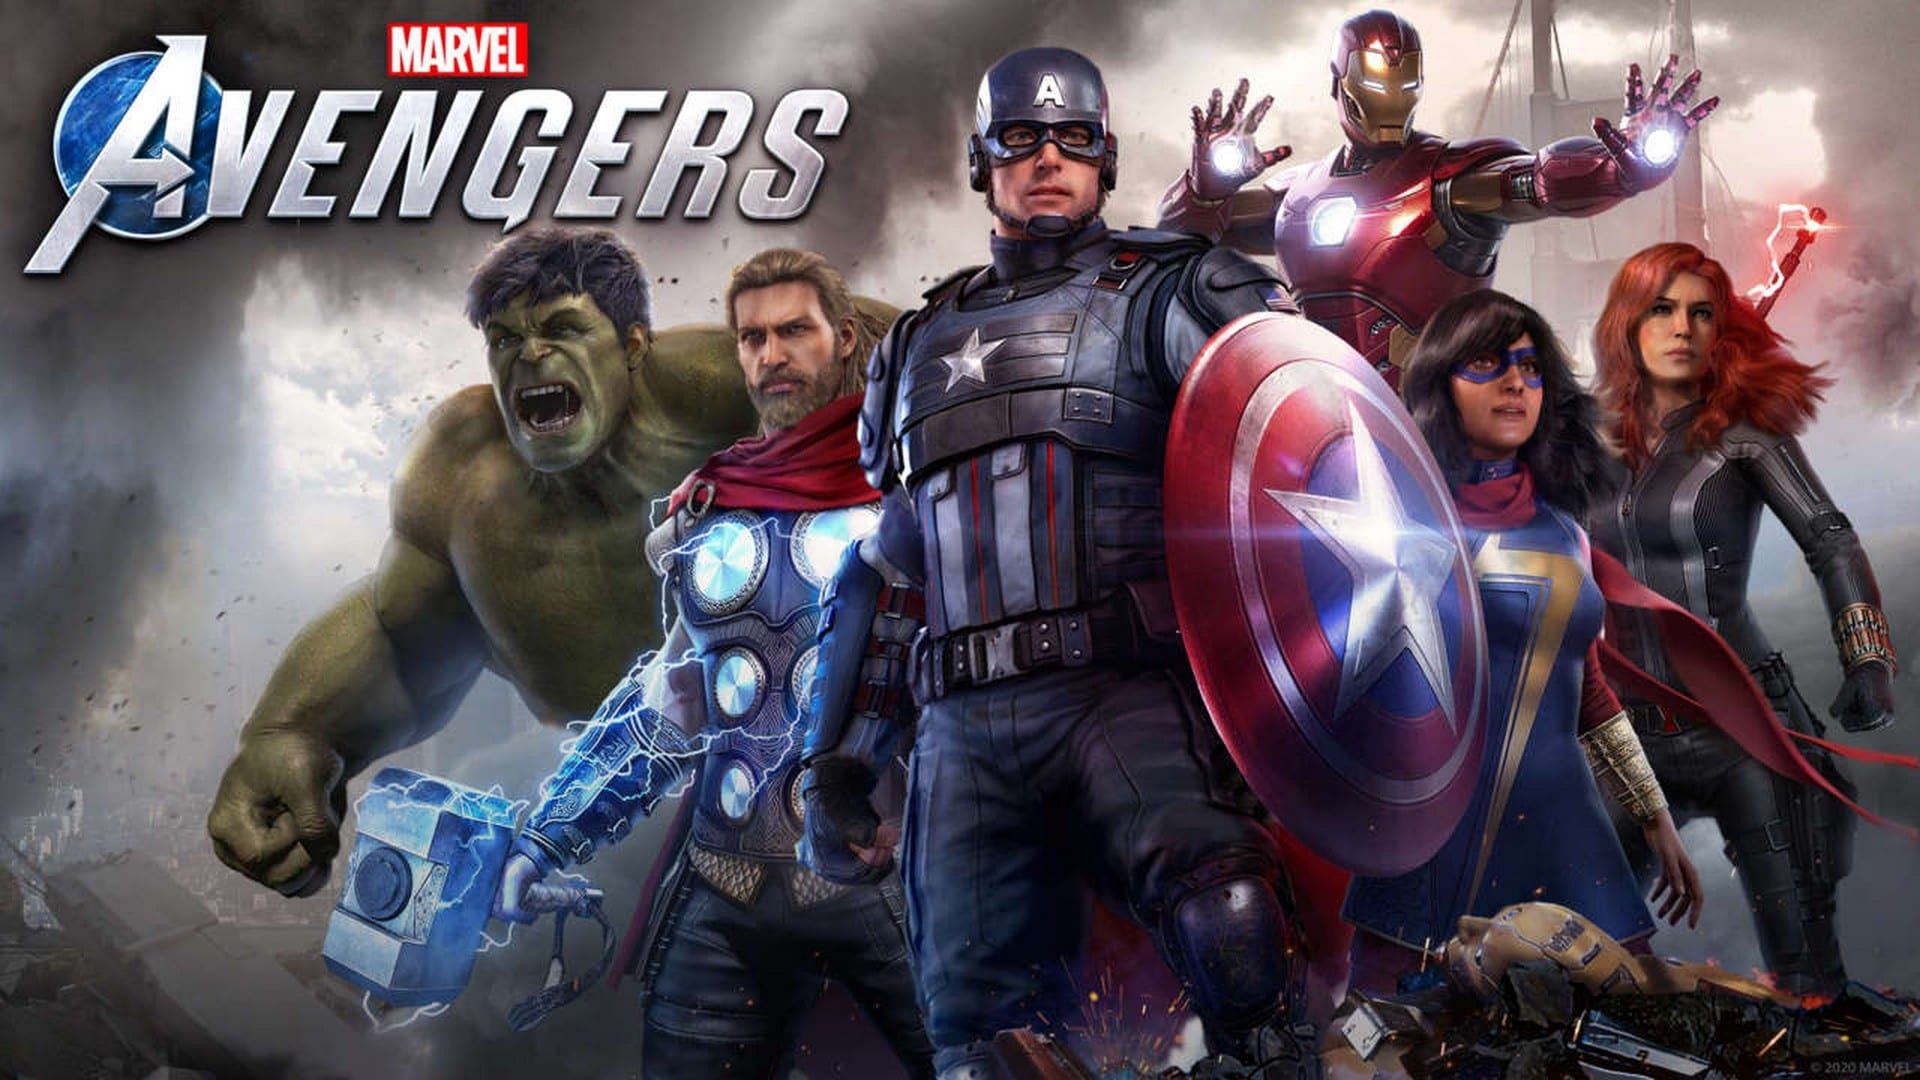 CGI Trailer Released For Marvel's Avengers